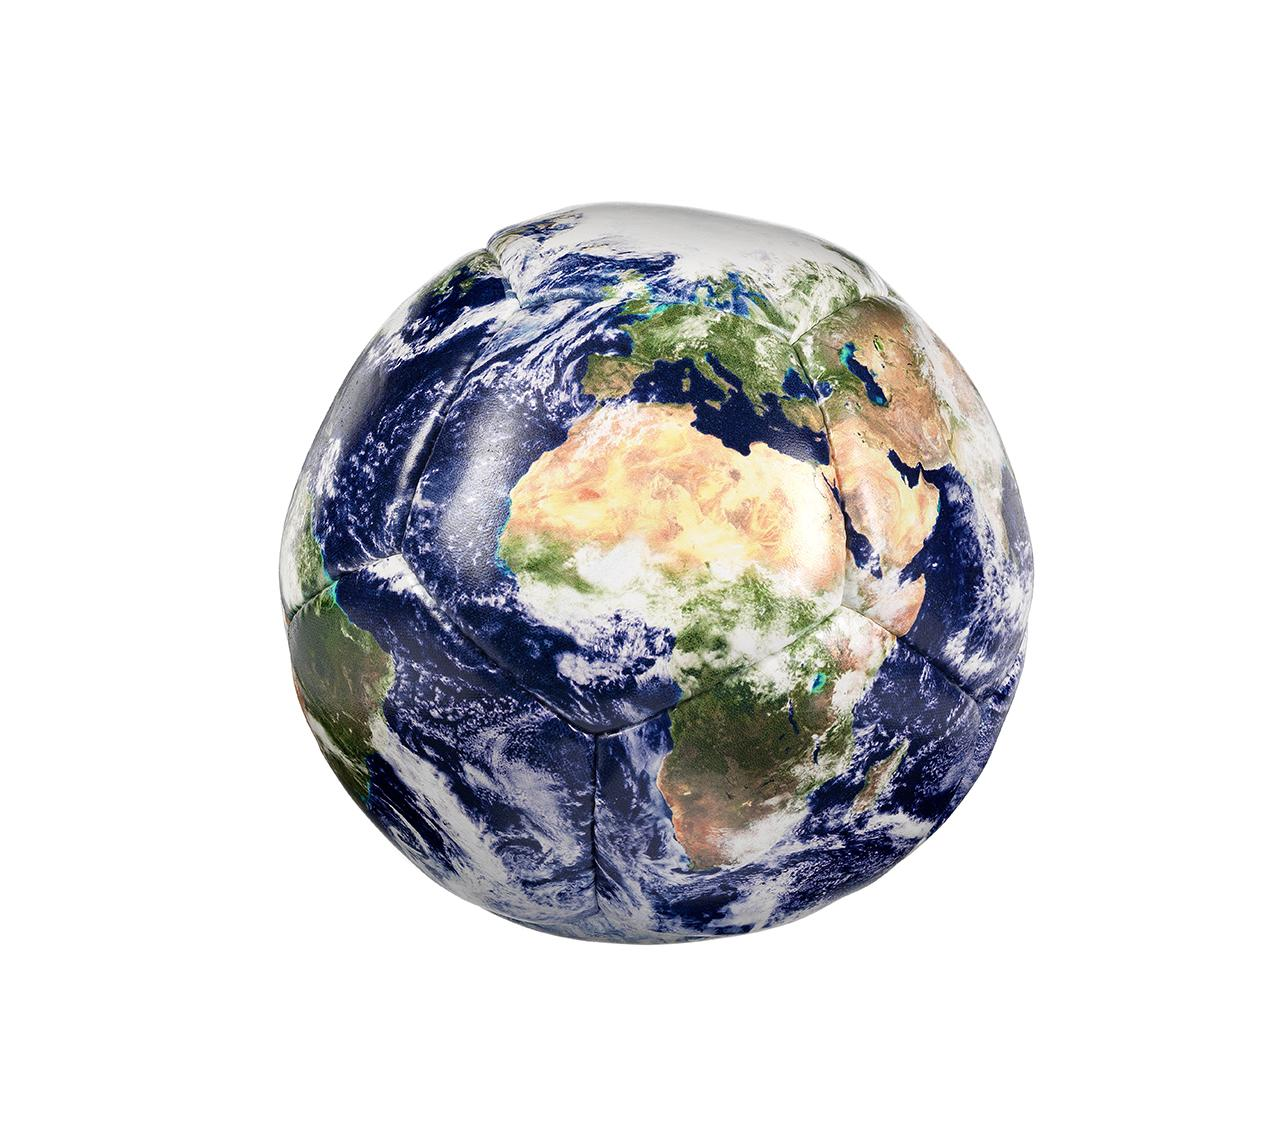 Image of the globe